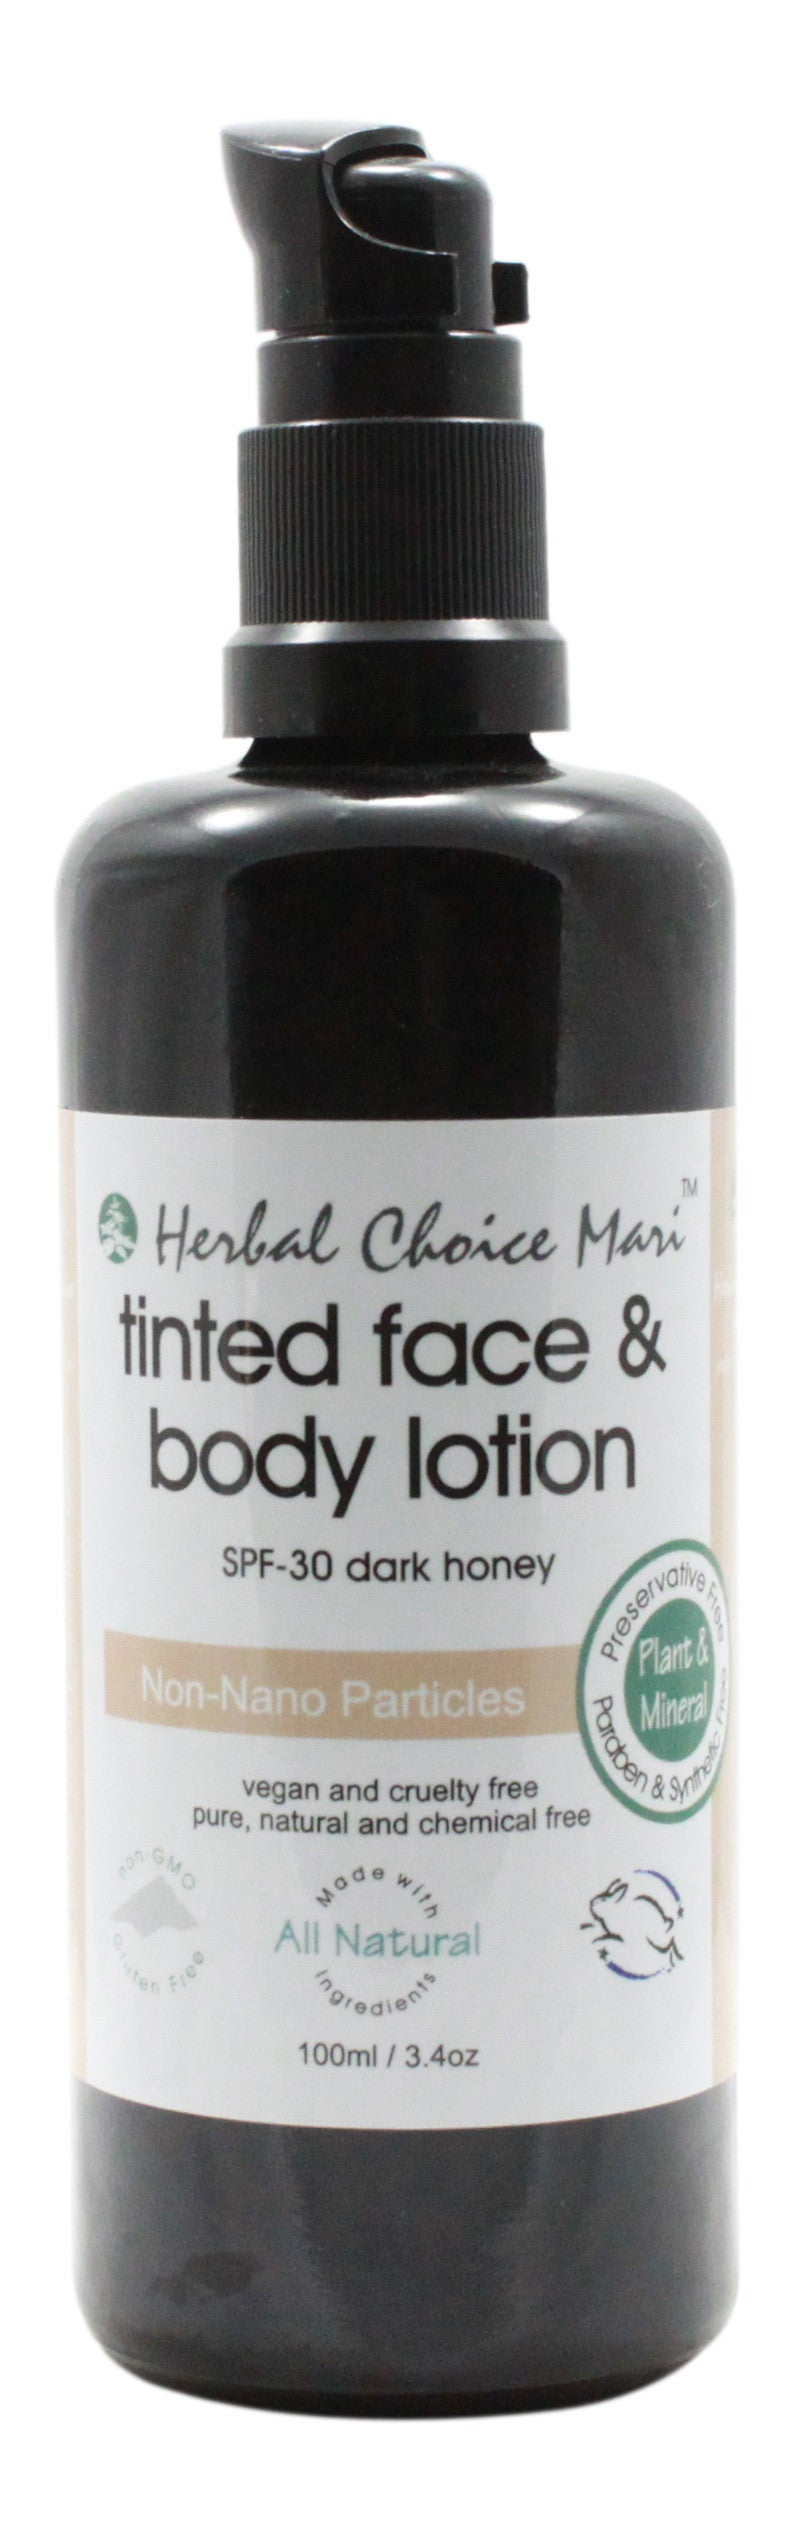 Tinted Face & Body Lotion - SPF 30 - Dark Honey - 3.4 oz- Front